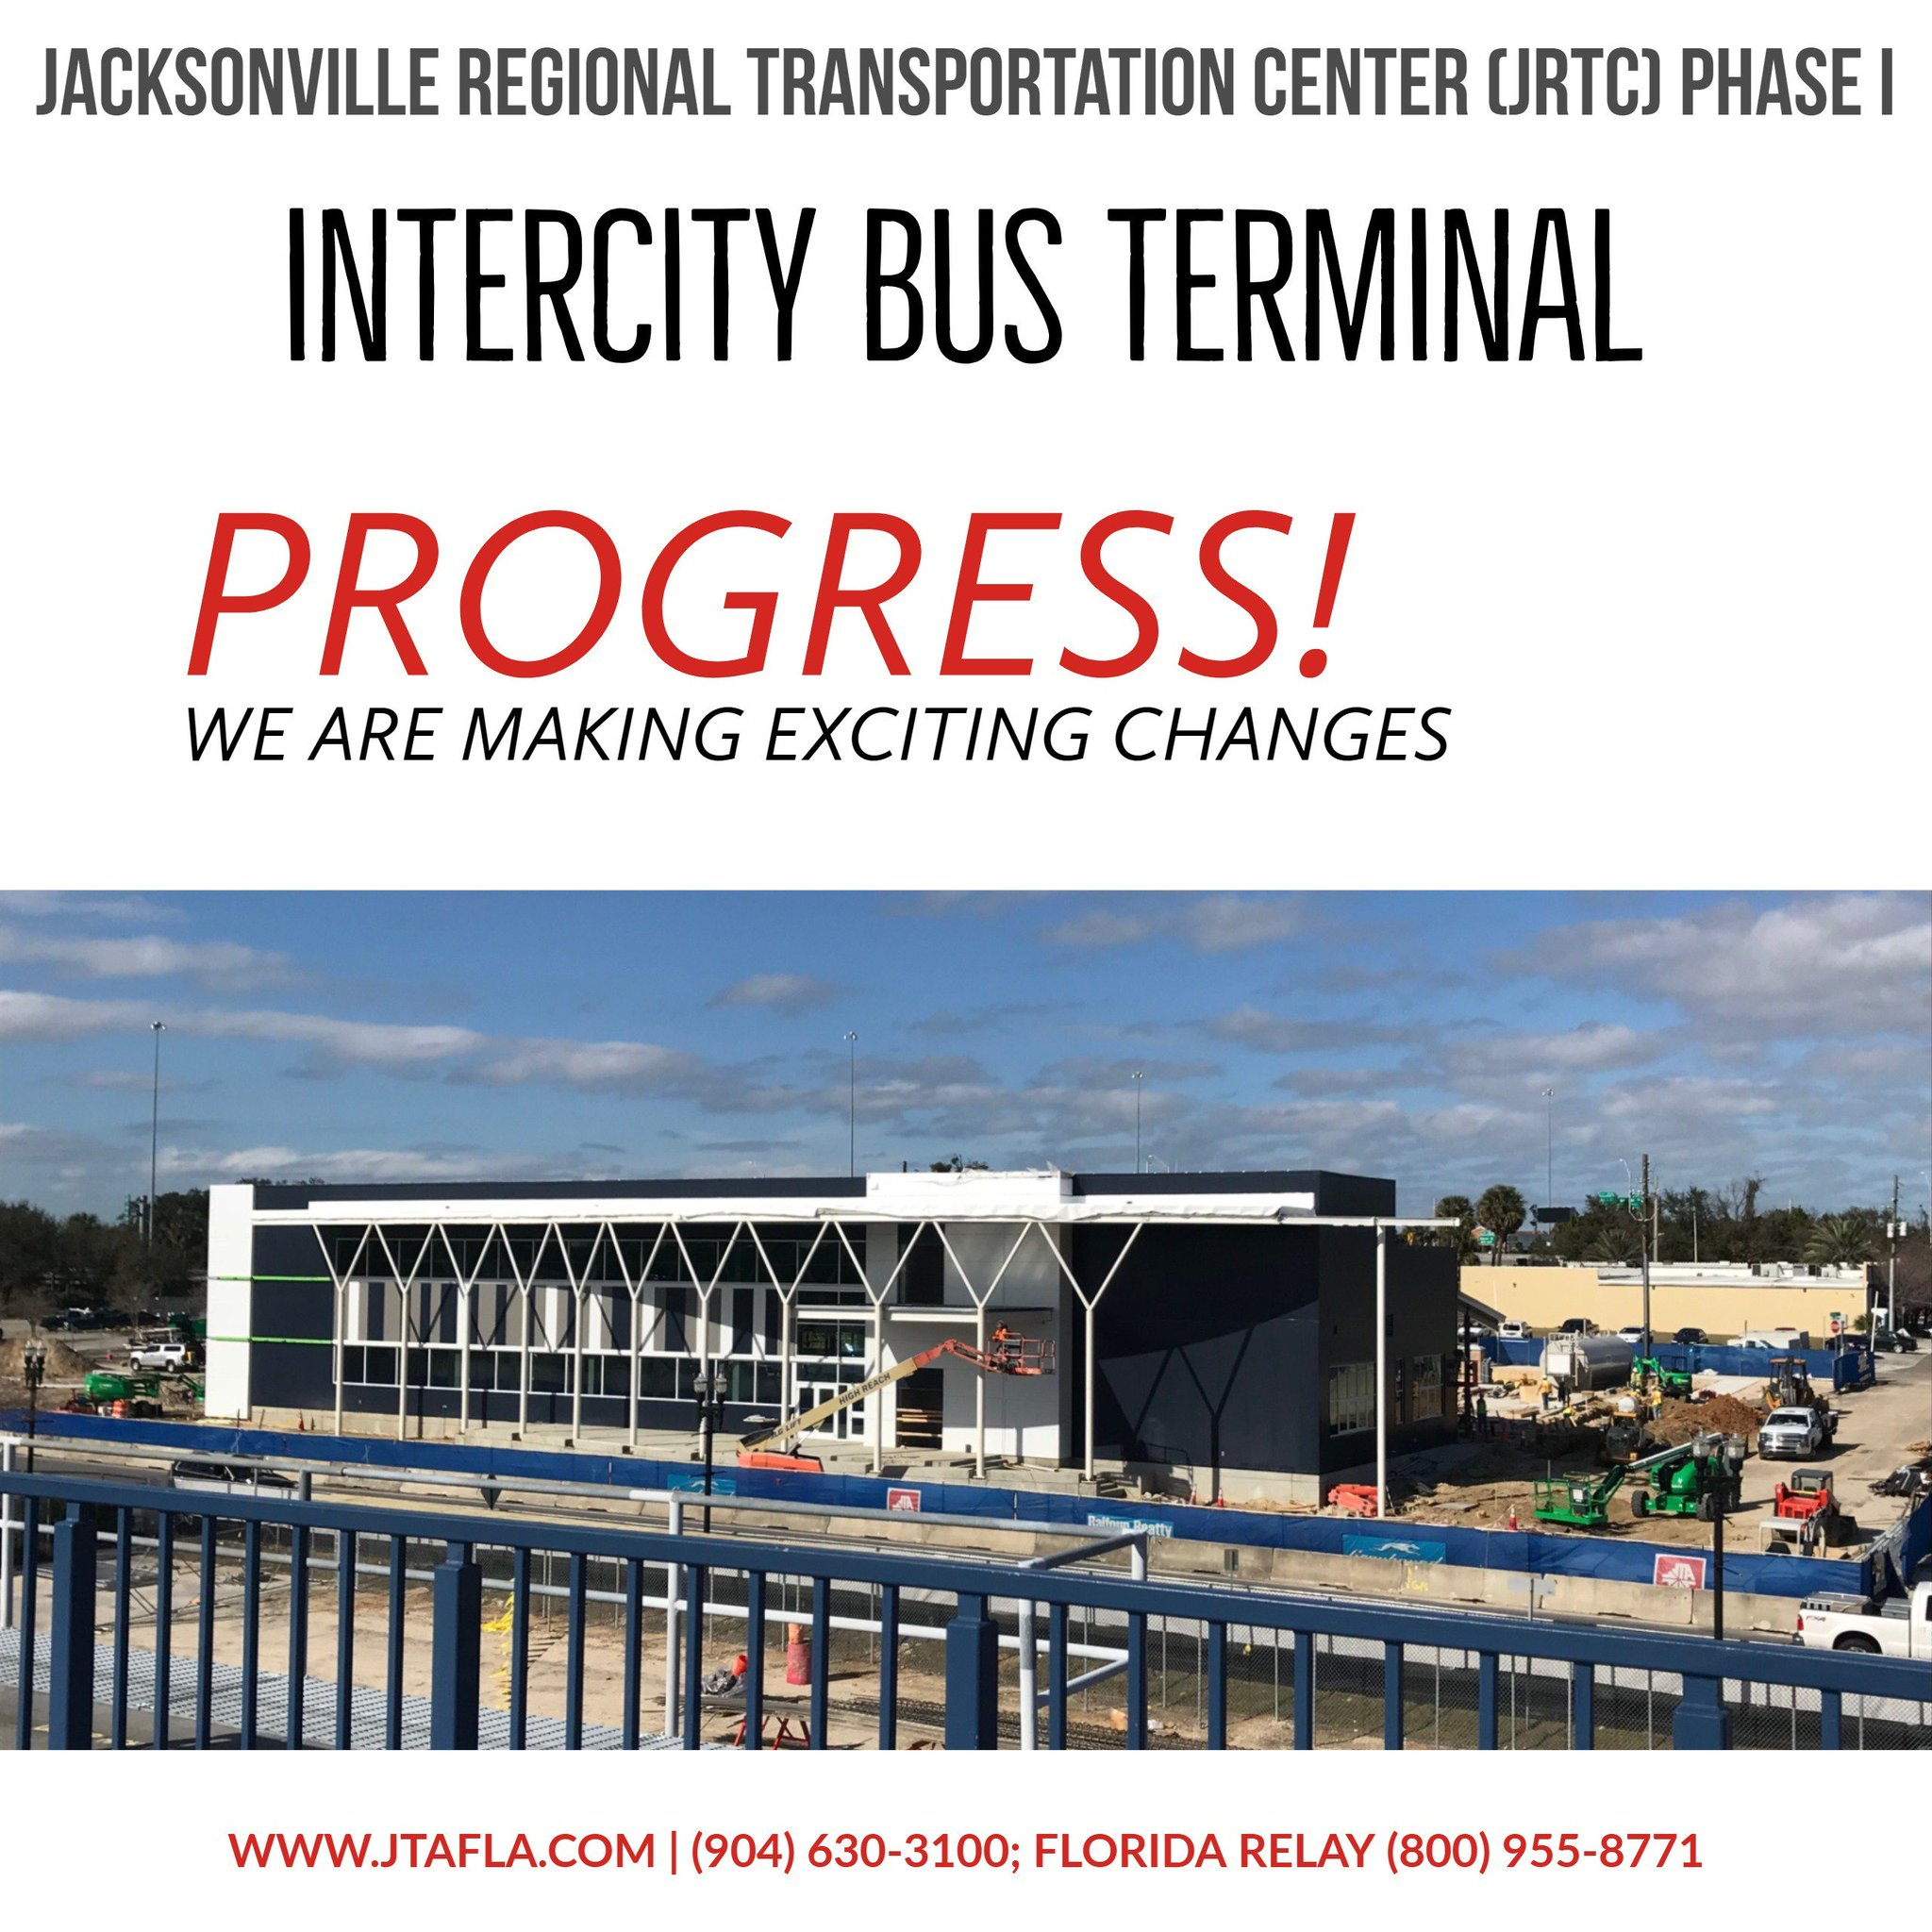 Jtafla On Twitter Progress Phase I Of Jtas Jacksonville Regional Relay Terminal Transportation Center Will Be Completed In March The Intercity Bus